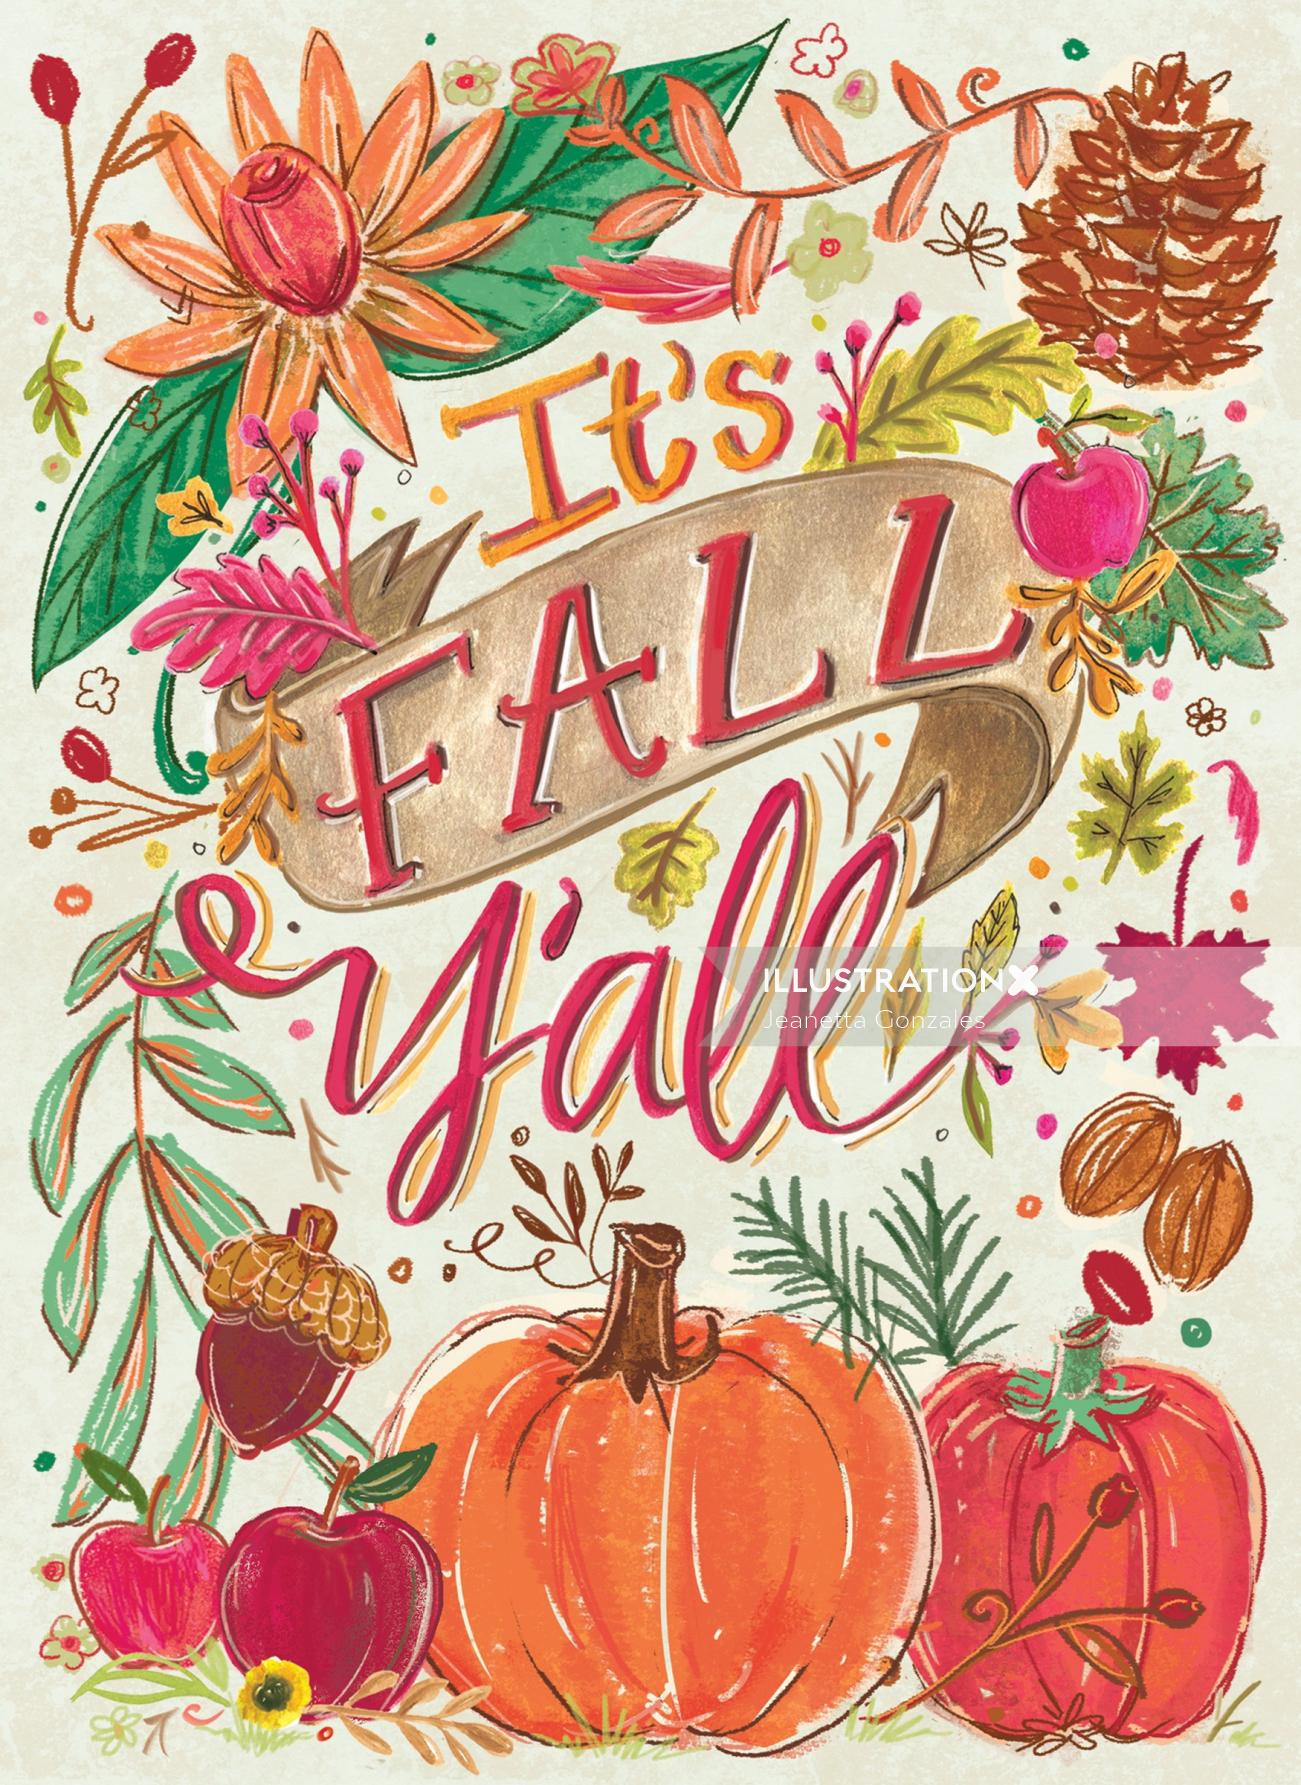 Calligraphy art of it's fall y'all